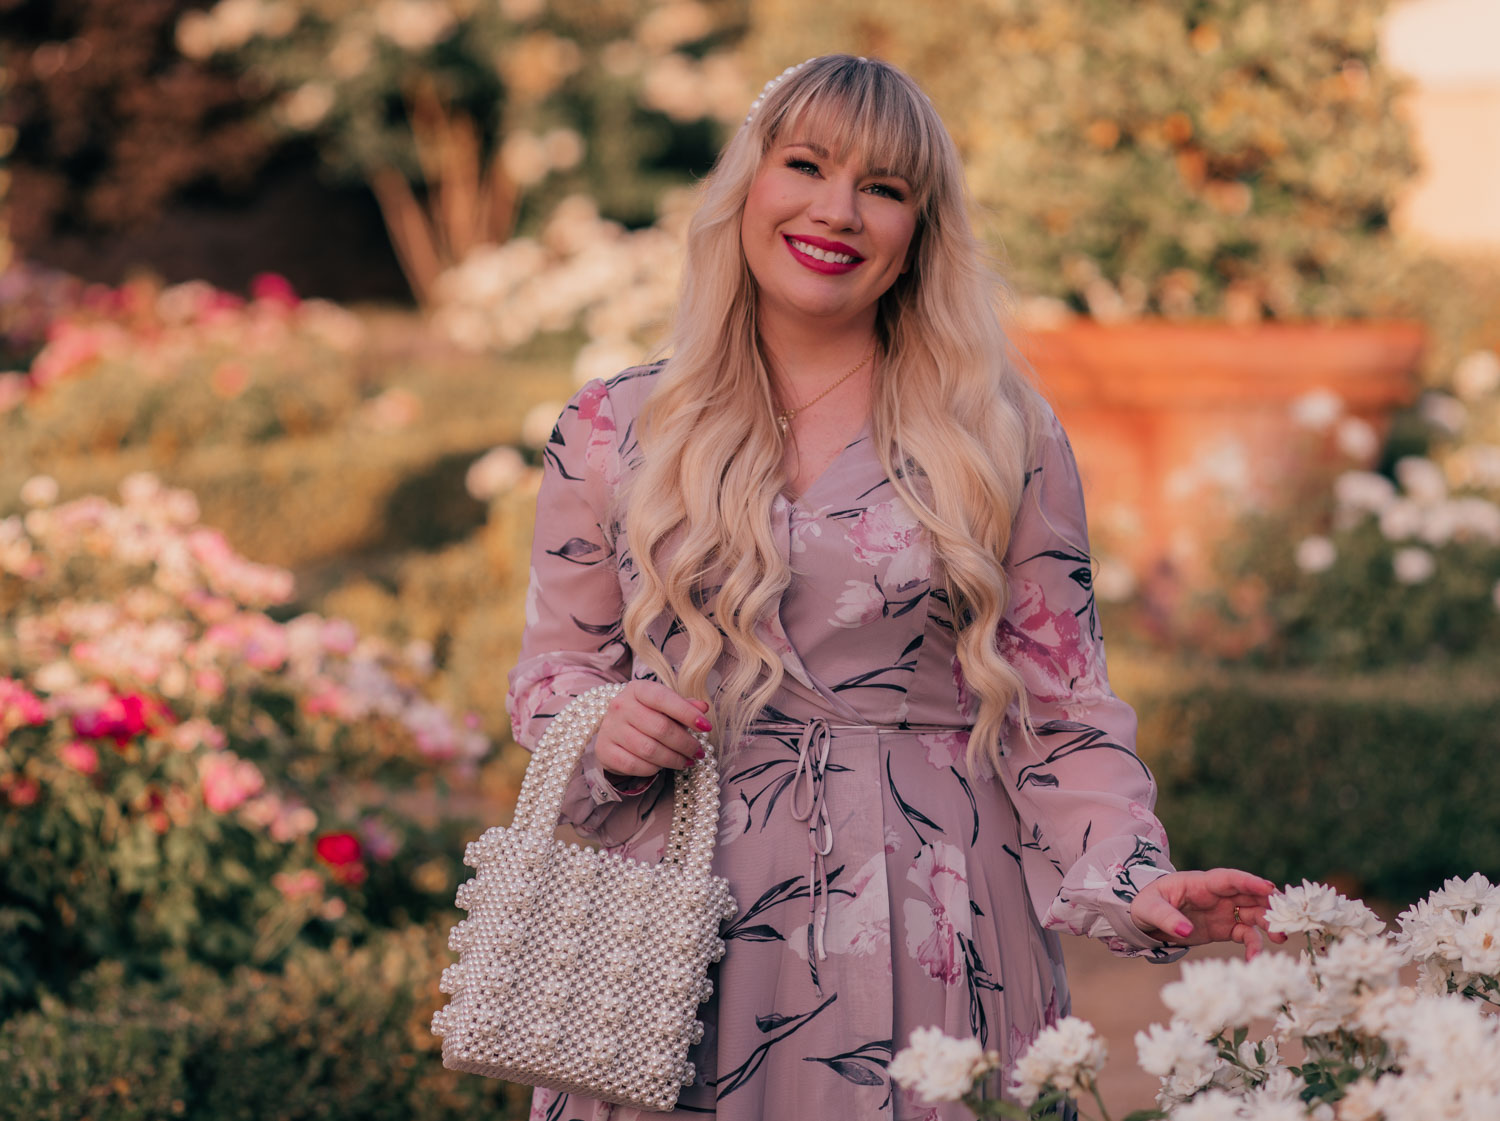 Feminine fashion blogger Elizabeth Hugen of Lizzie in Lace shares A Flattering Maxi Dress for Every Body Type including this floral Chicwish maxi dress and a pearl handbag